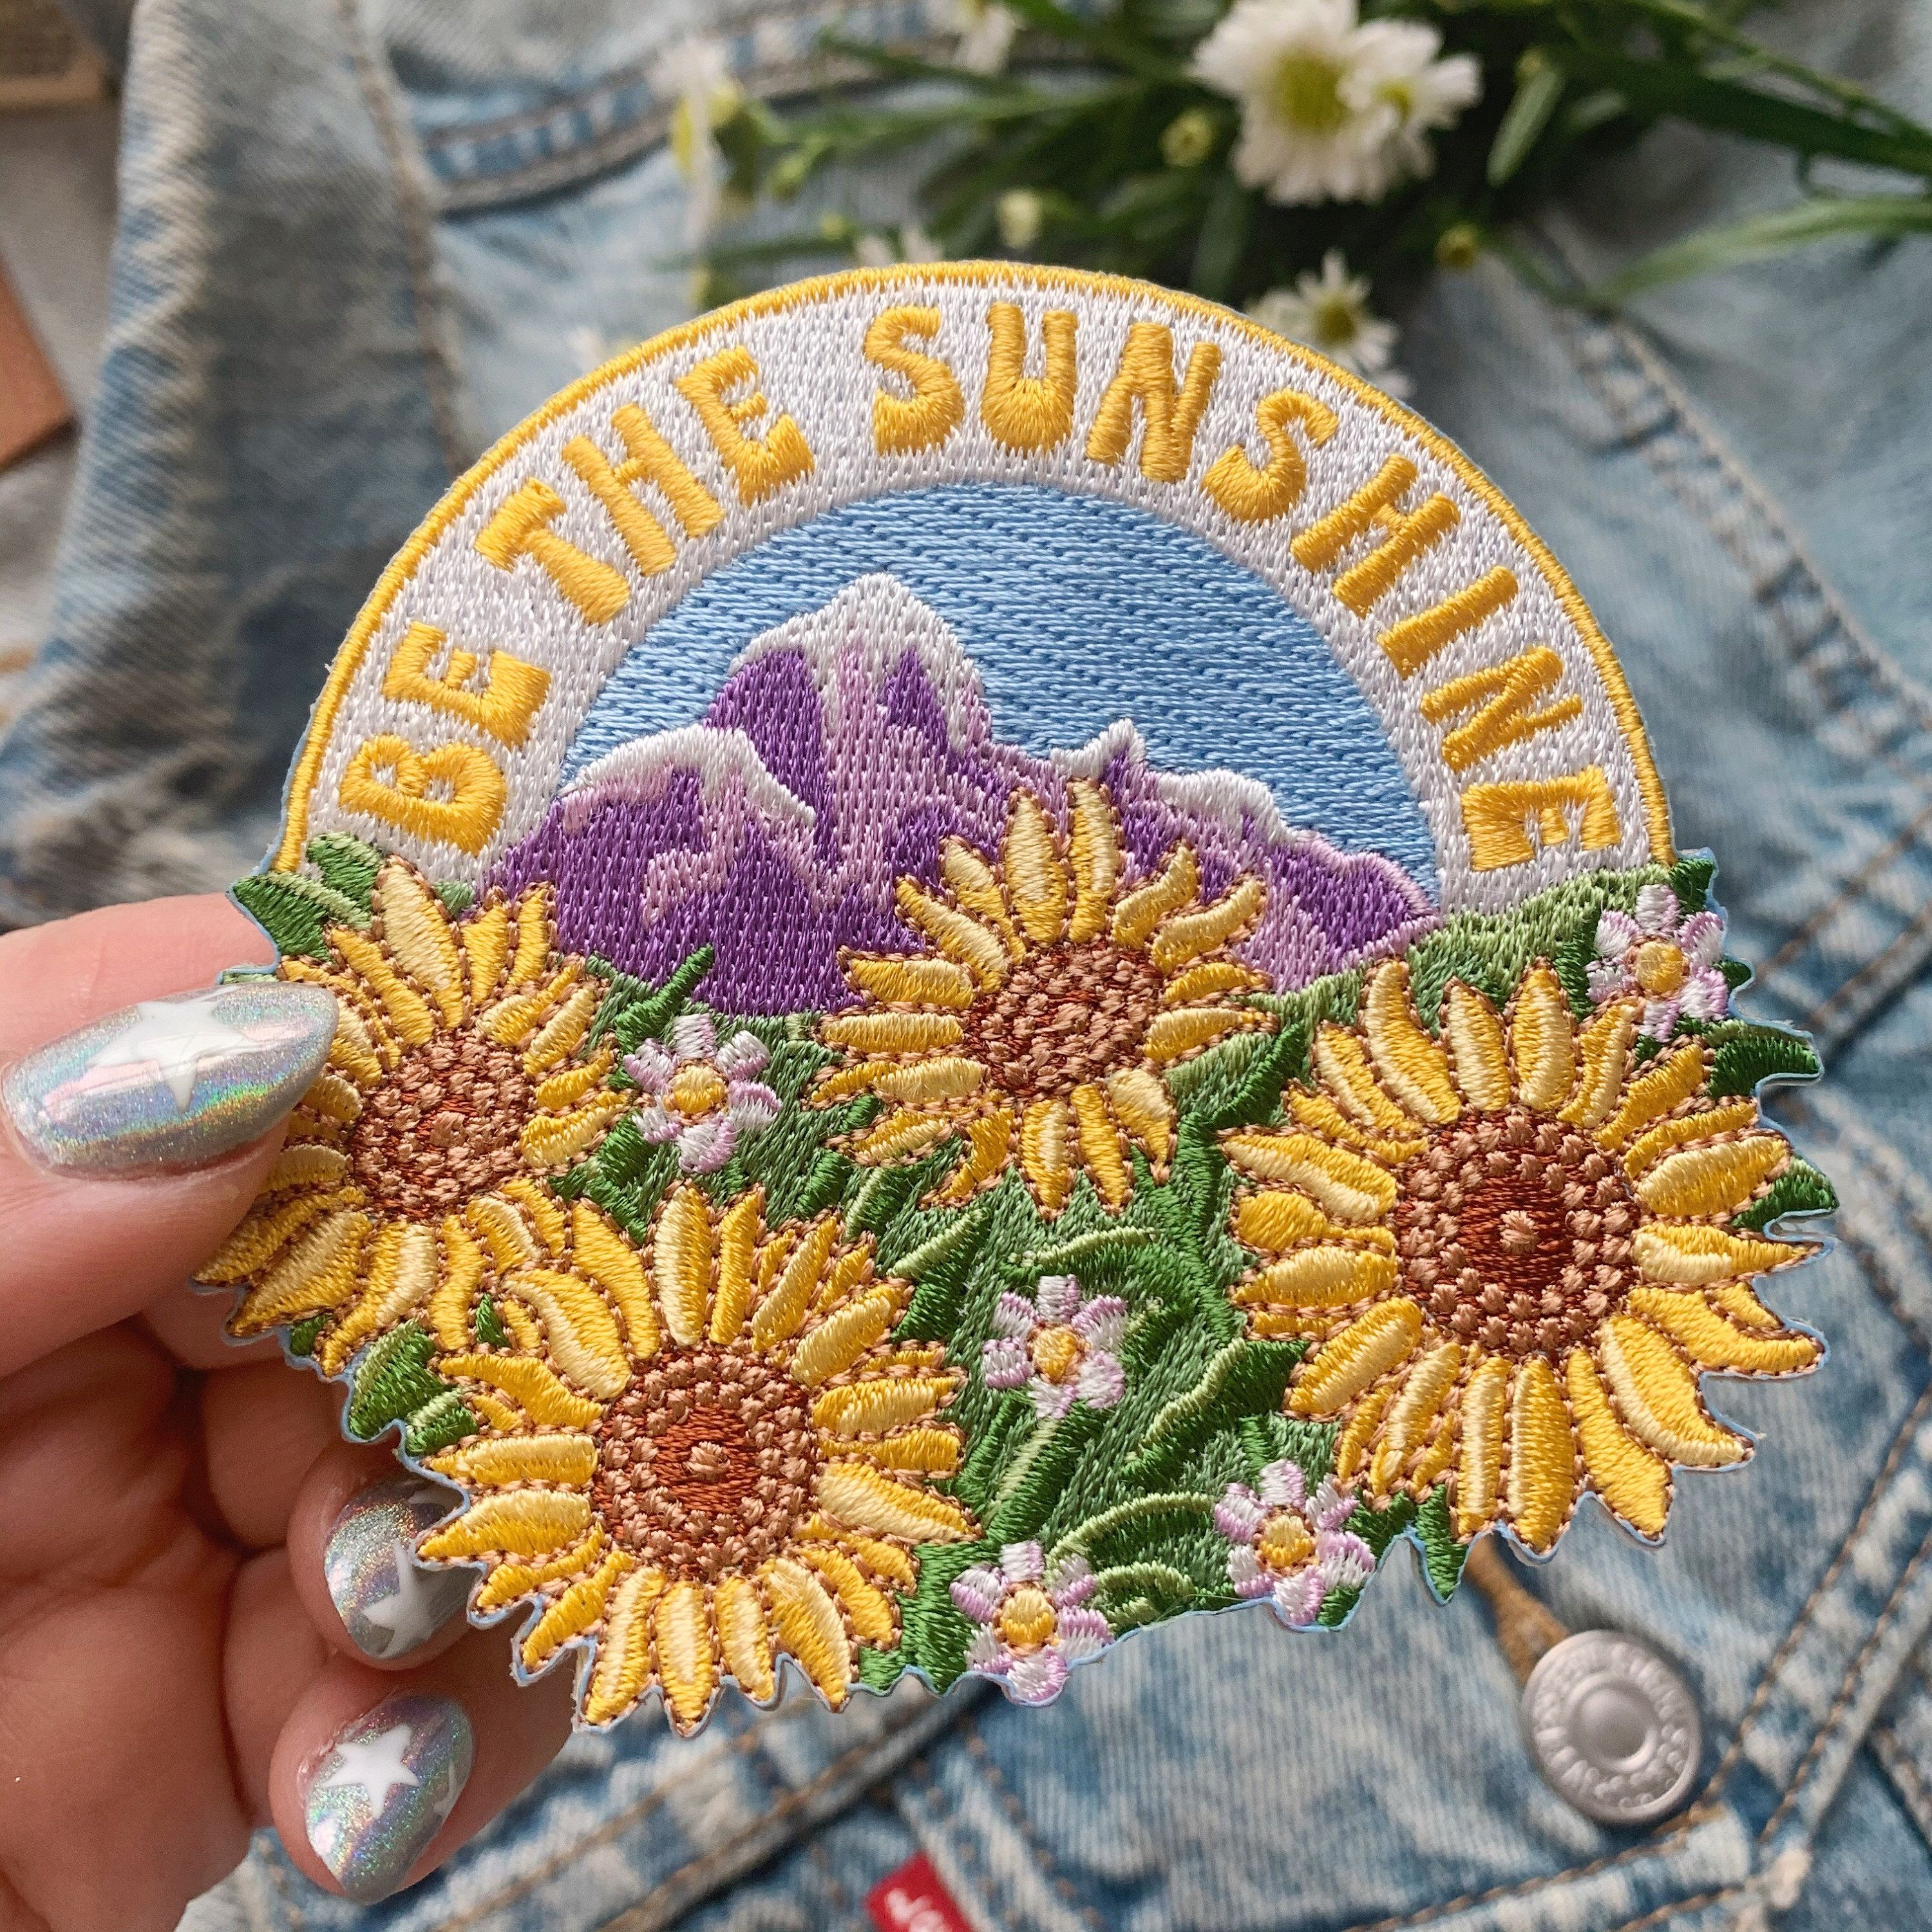 Wild Patch Mountains Patch Iron-On Patch Embroidery Embroided Applique Applique Motif Gift Hiking Explore